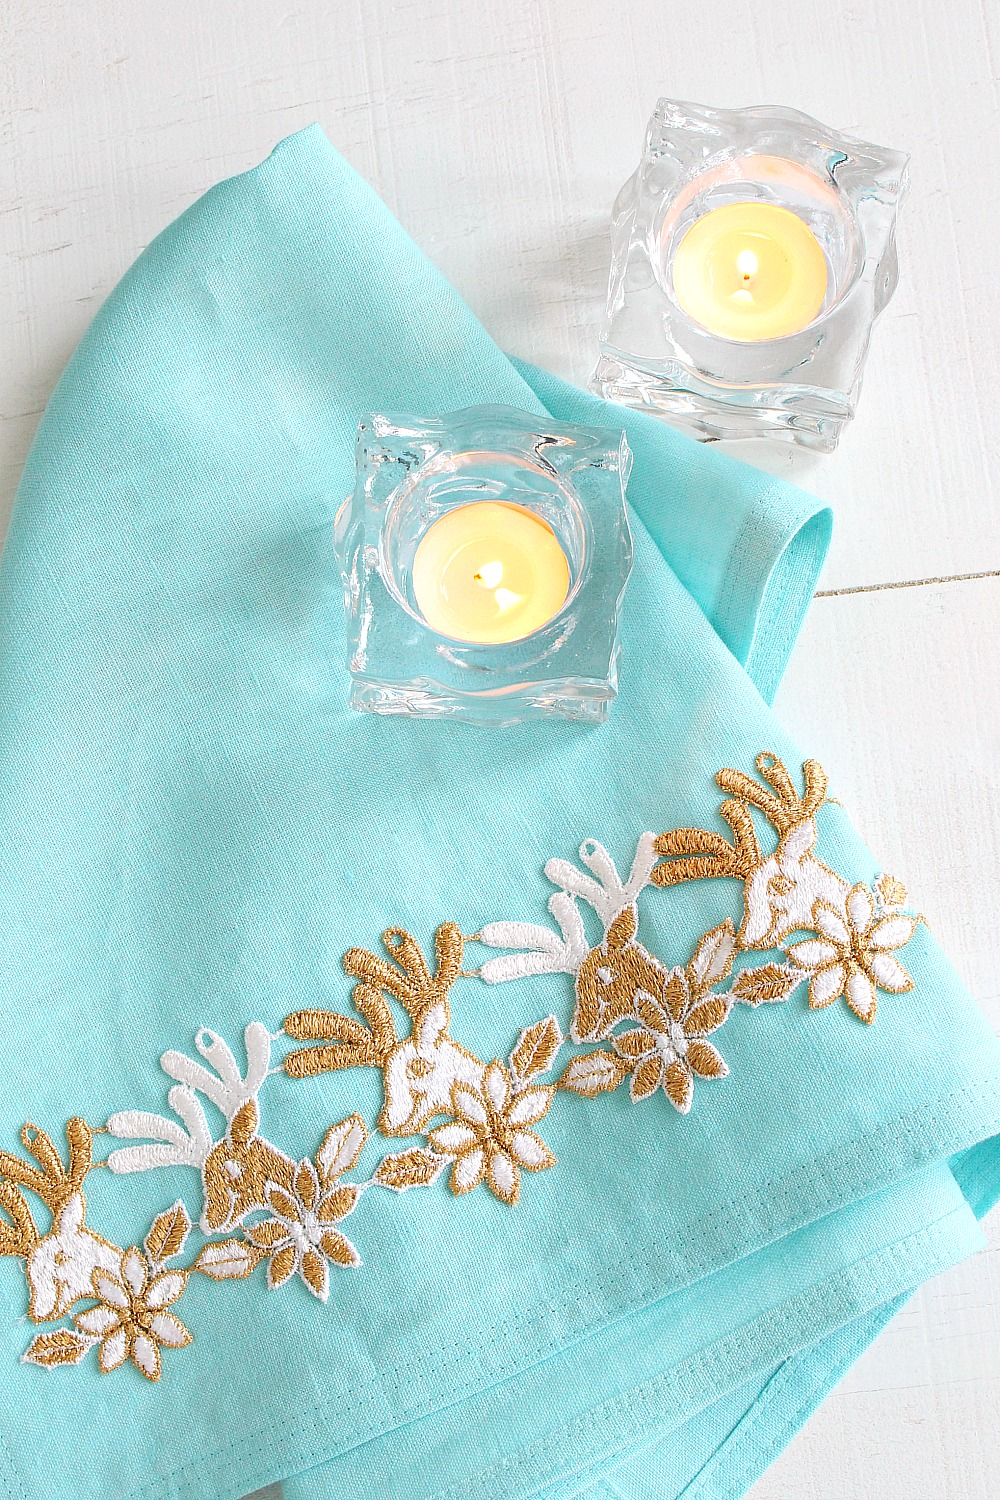 DIY embellished tea towel